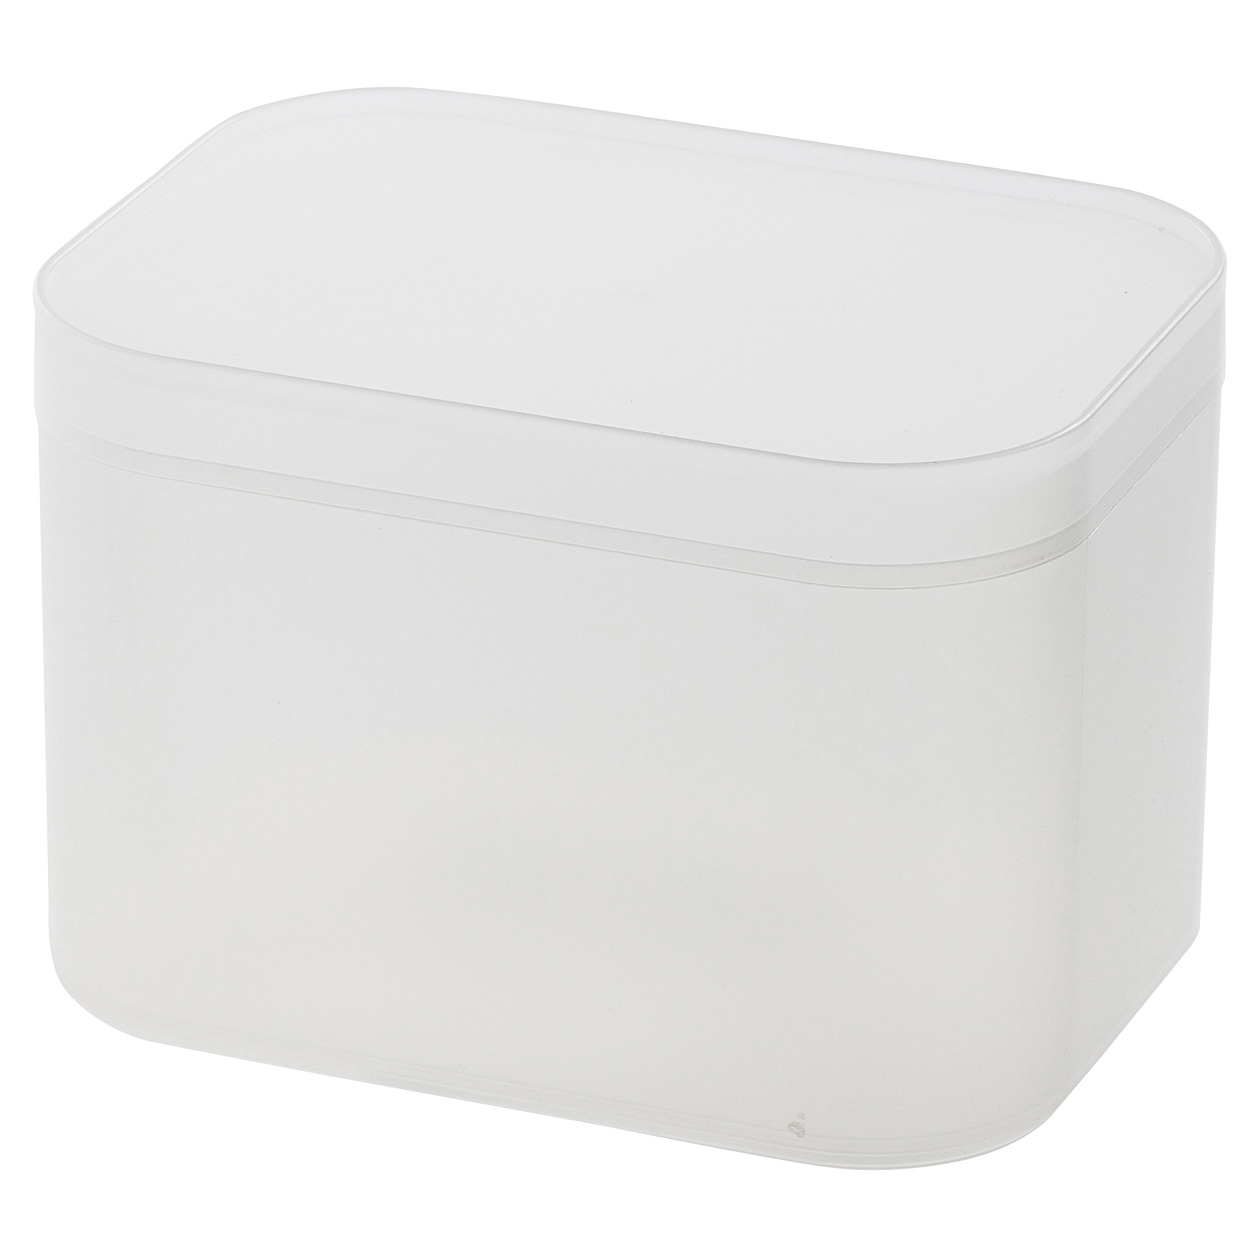 PP half box with lid